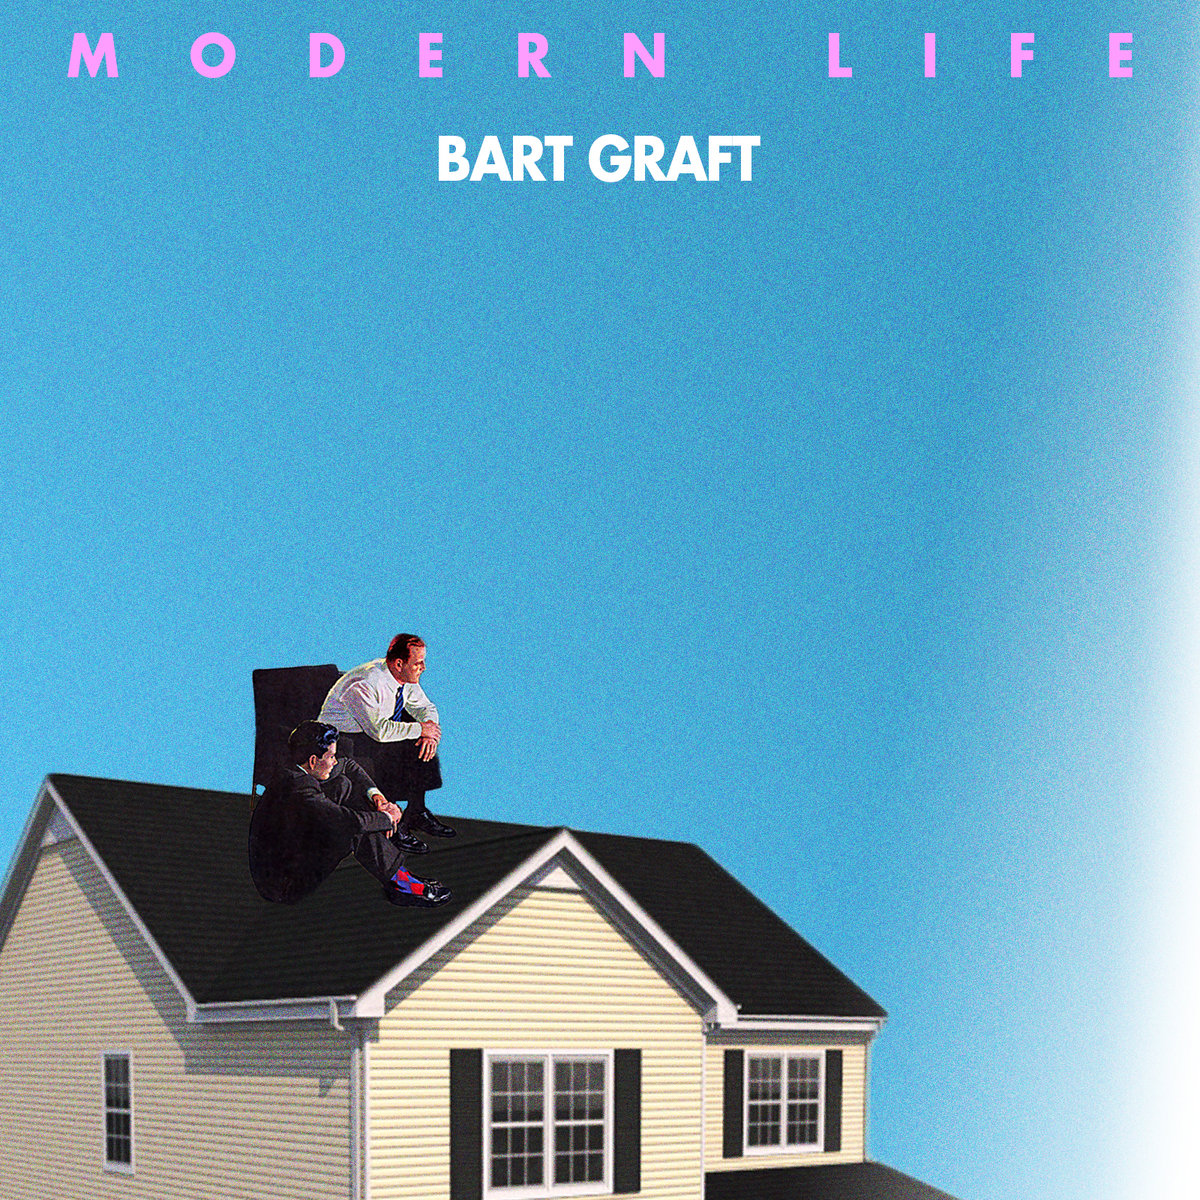 Bart GraftModern Life-Bart Graft-Art